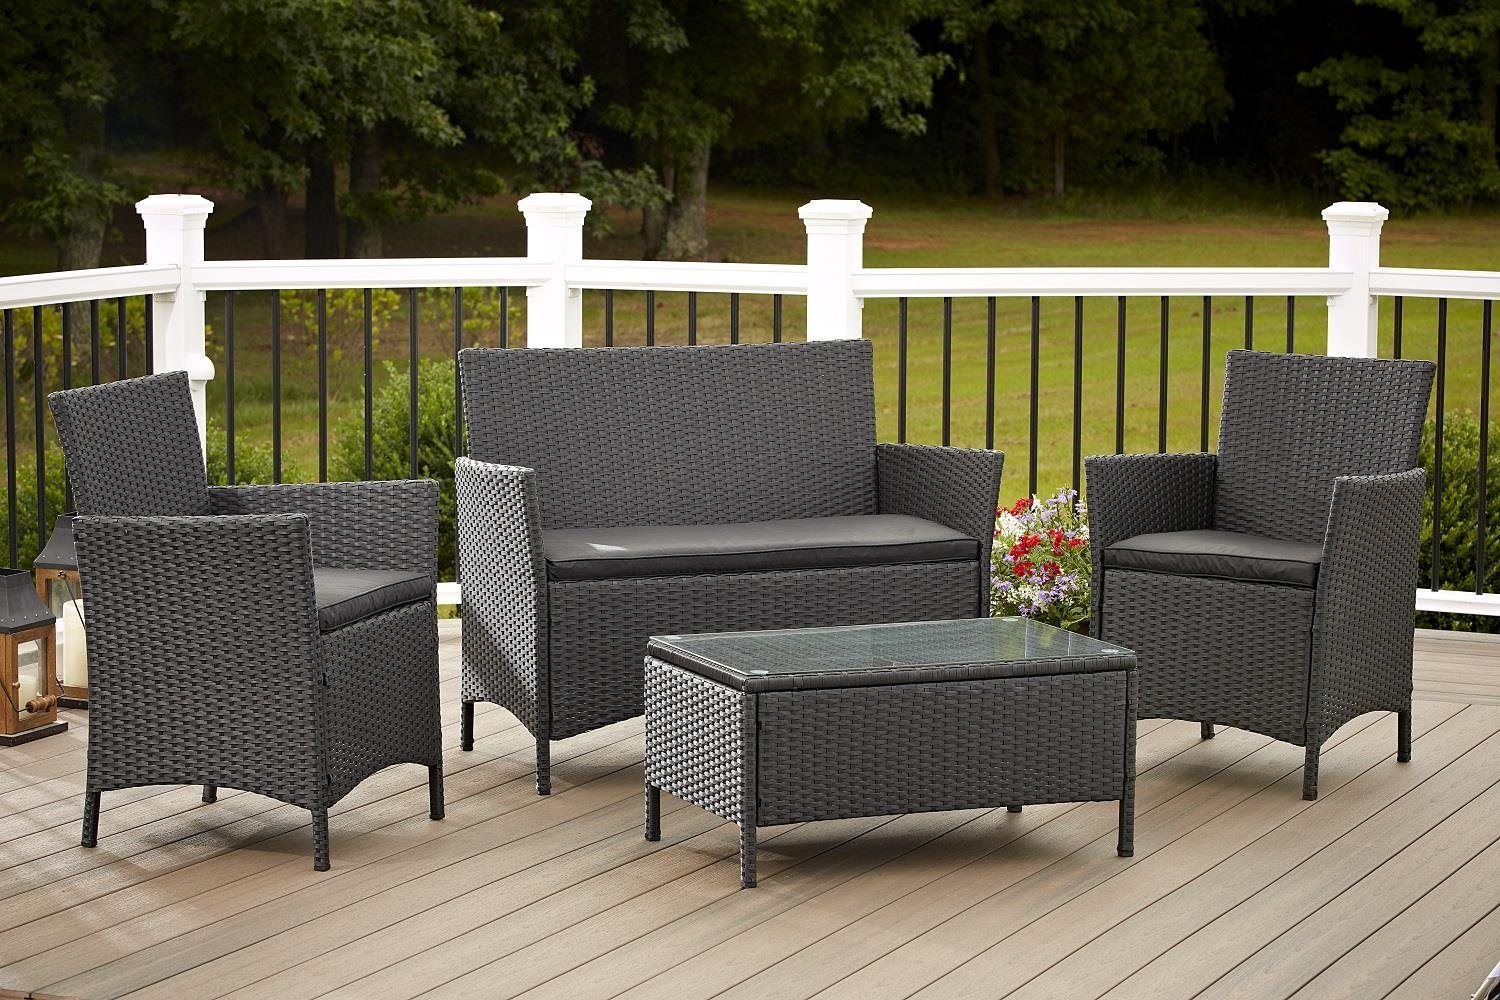 Amazon.com: Cosco Products 4 Piece Jamaica Resin Wicker Conversation Set:  Garden U0026 Outdoor Part 51